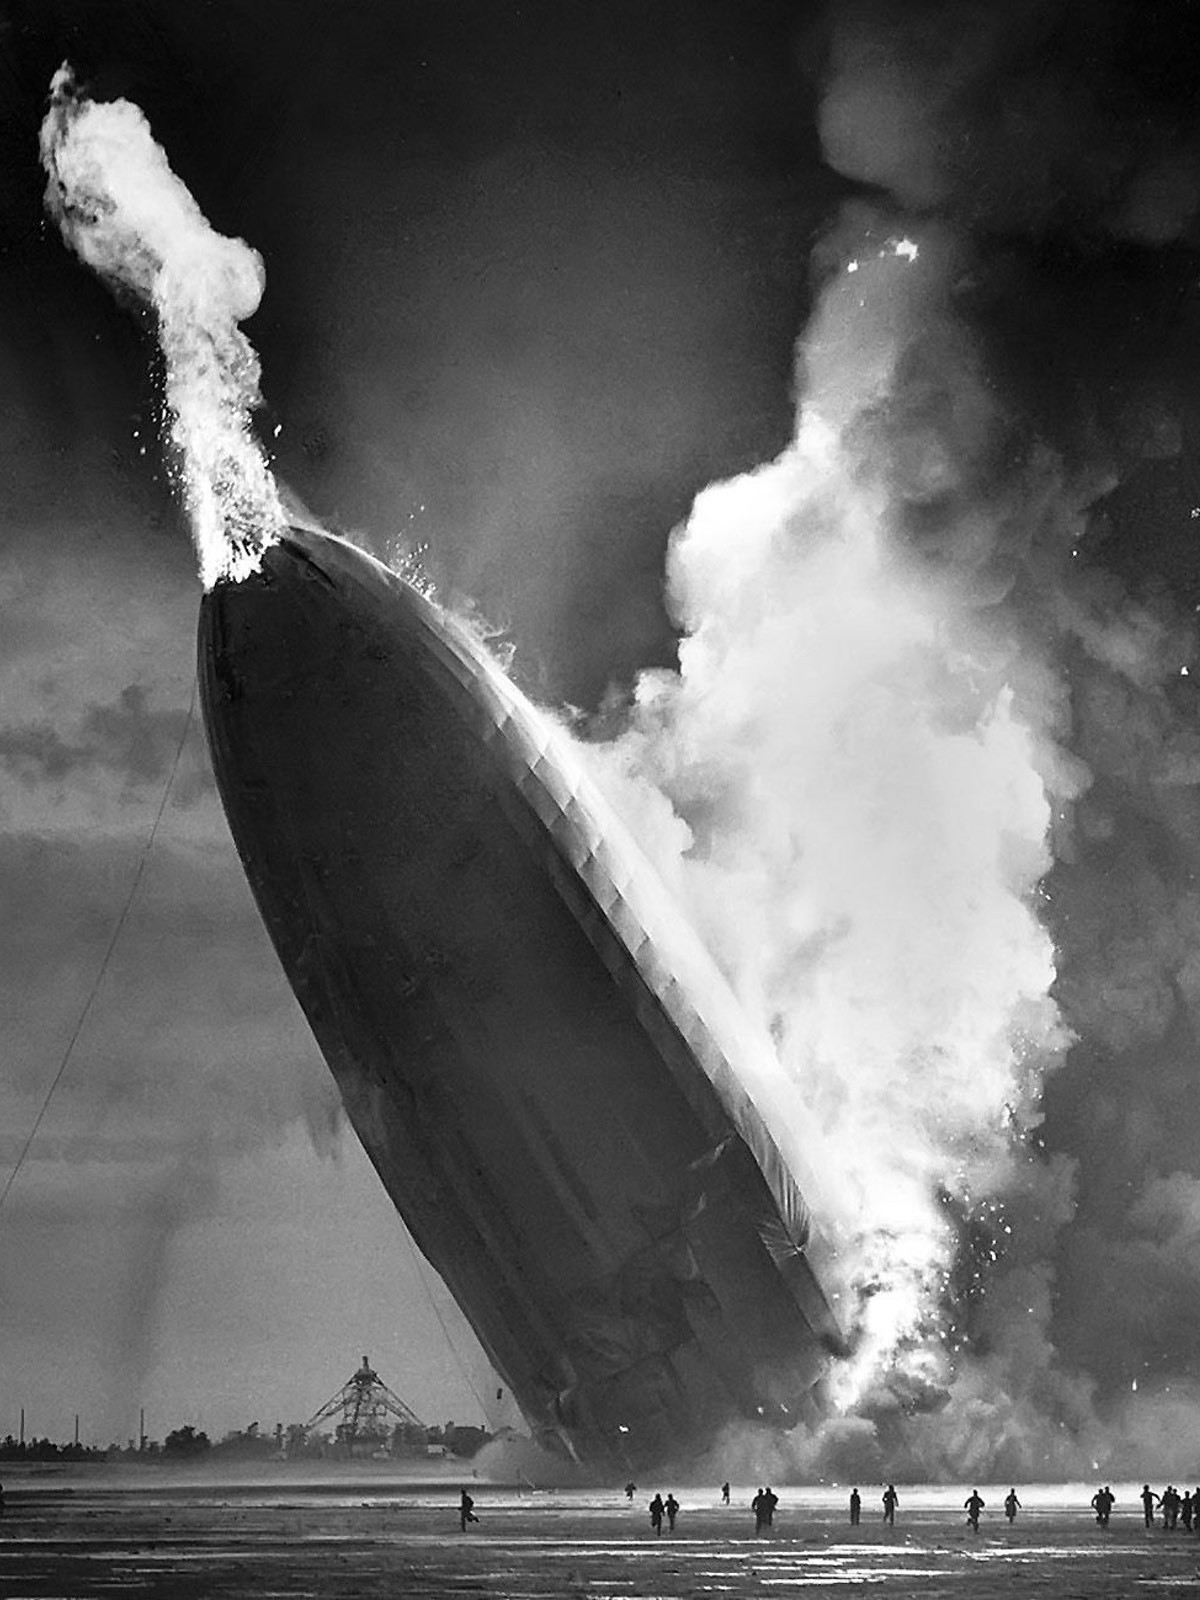 The Hindenburg was completely destroyed in a matter of seconds